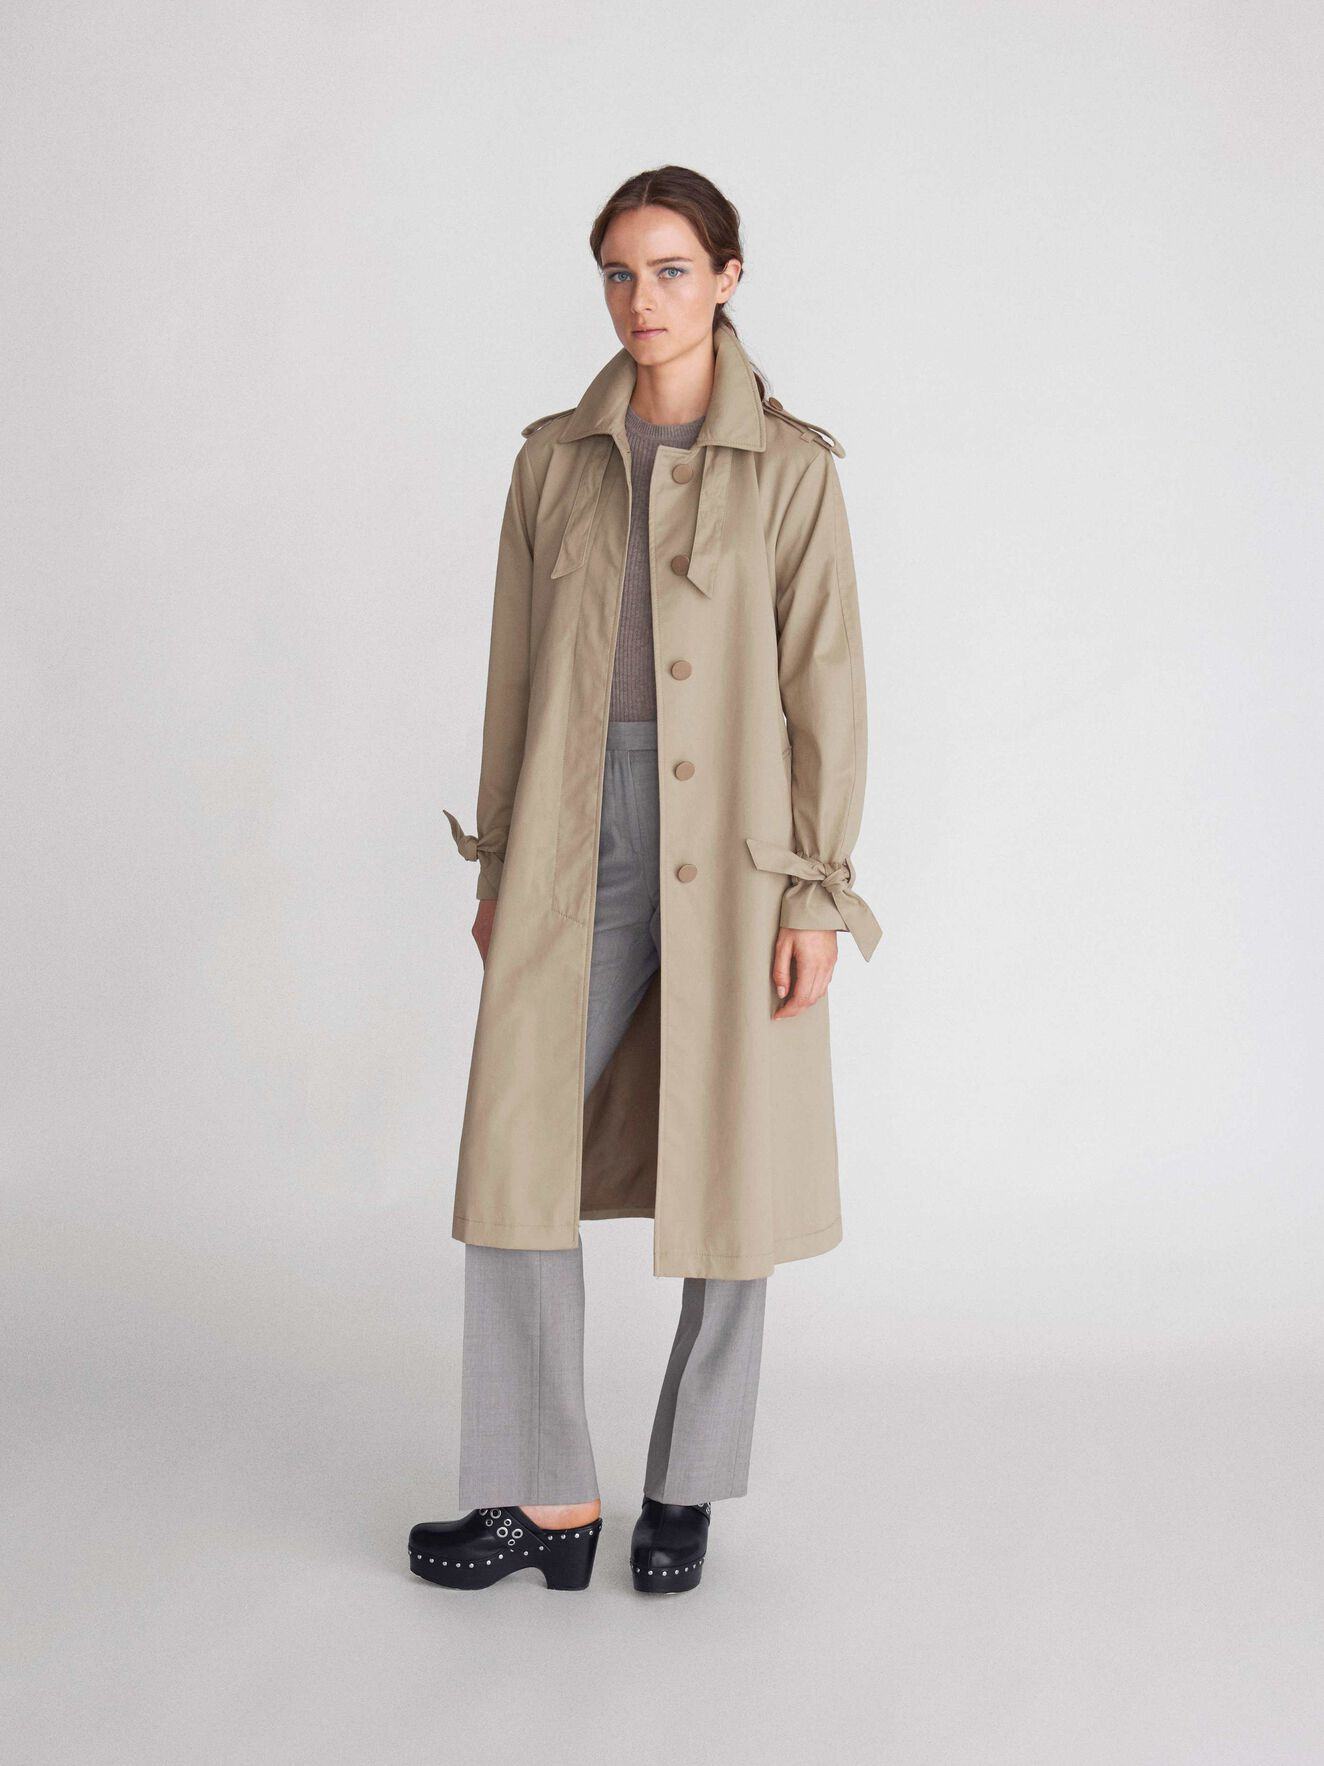 Torii Coat in Irish Cream from Tiger of Sweden